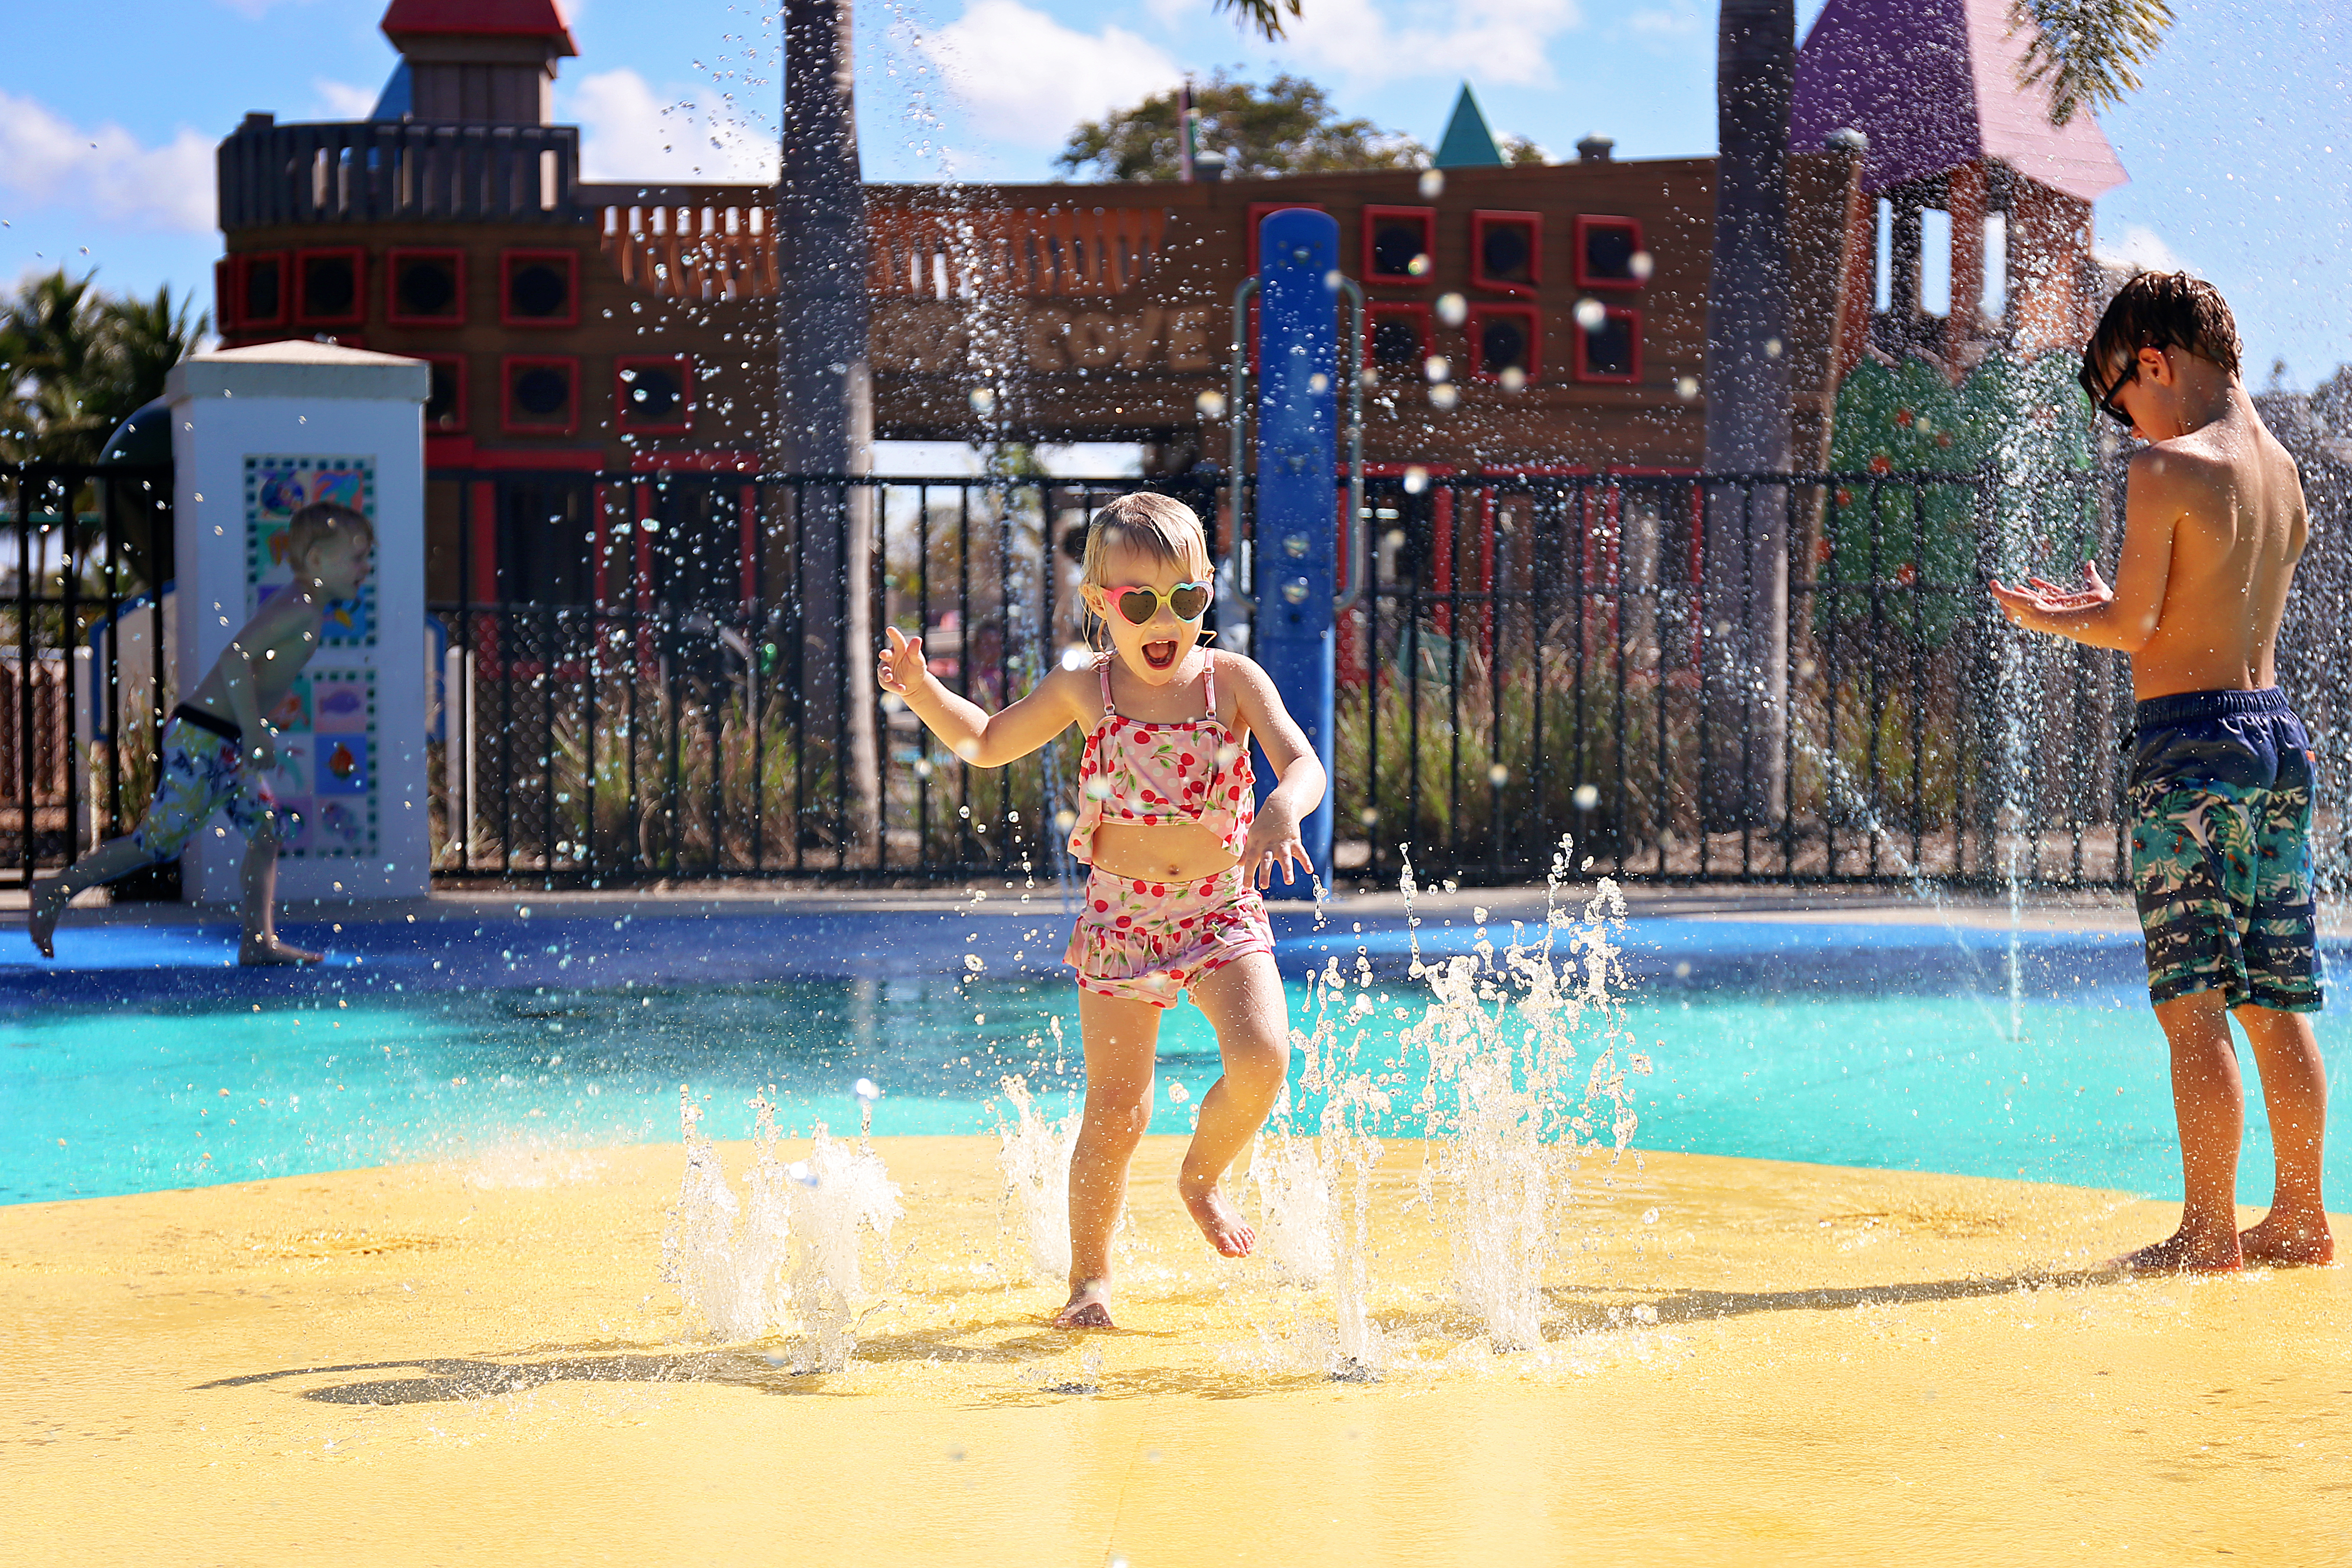 Public swimming pools, wading pools, spas, and splash pads